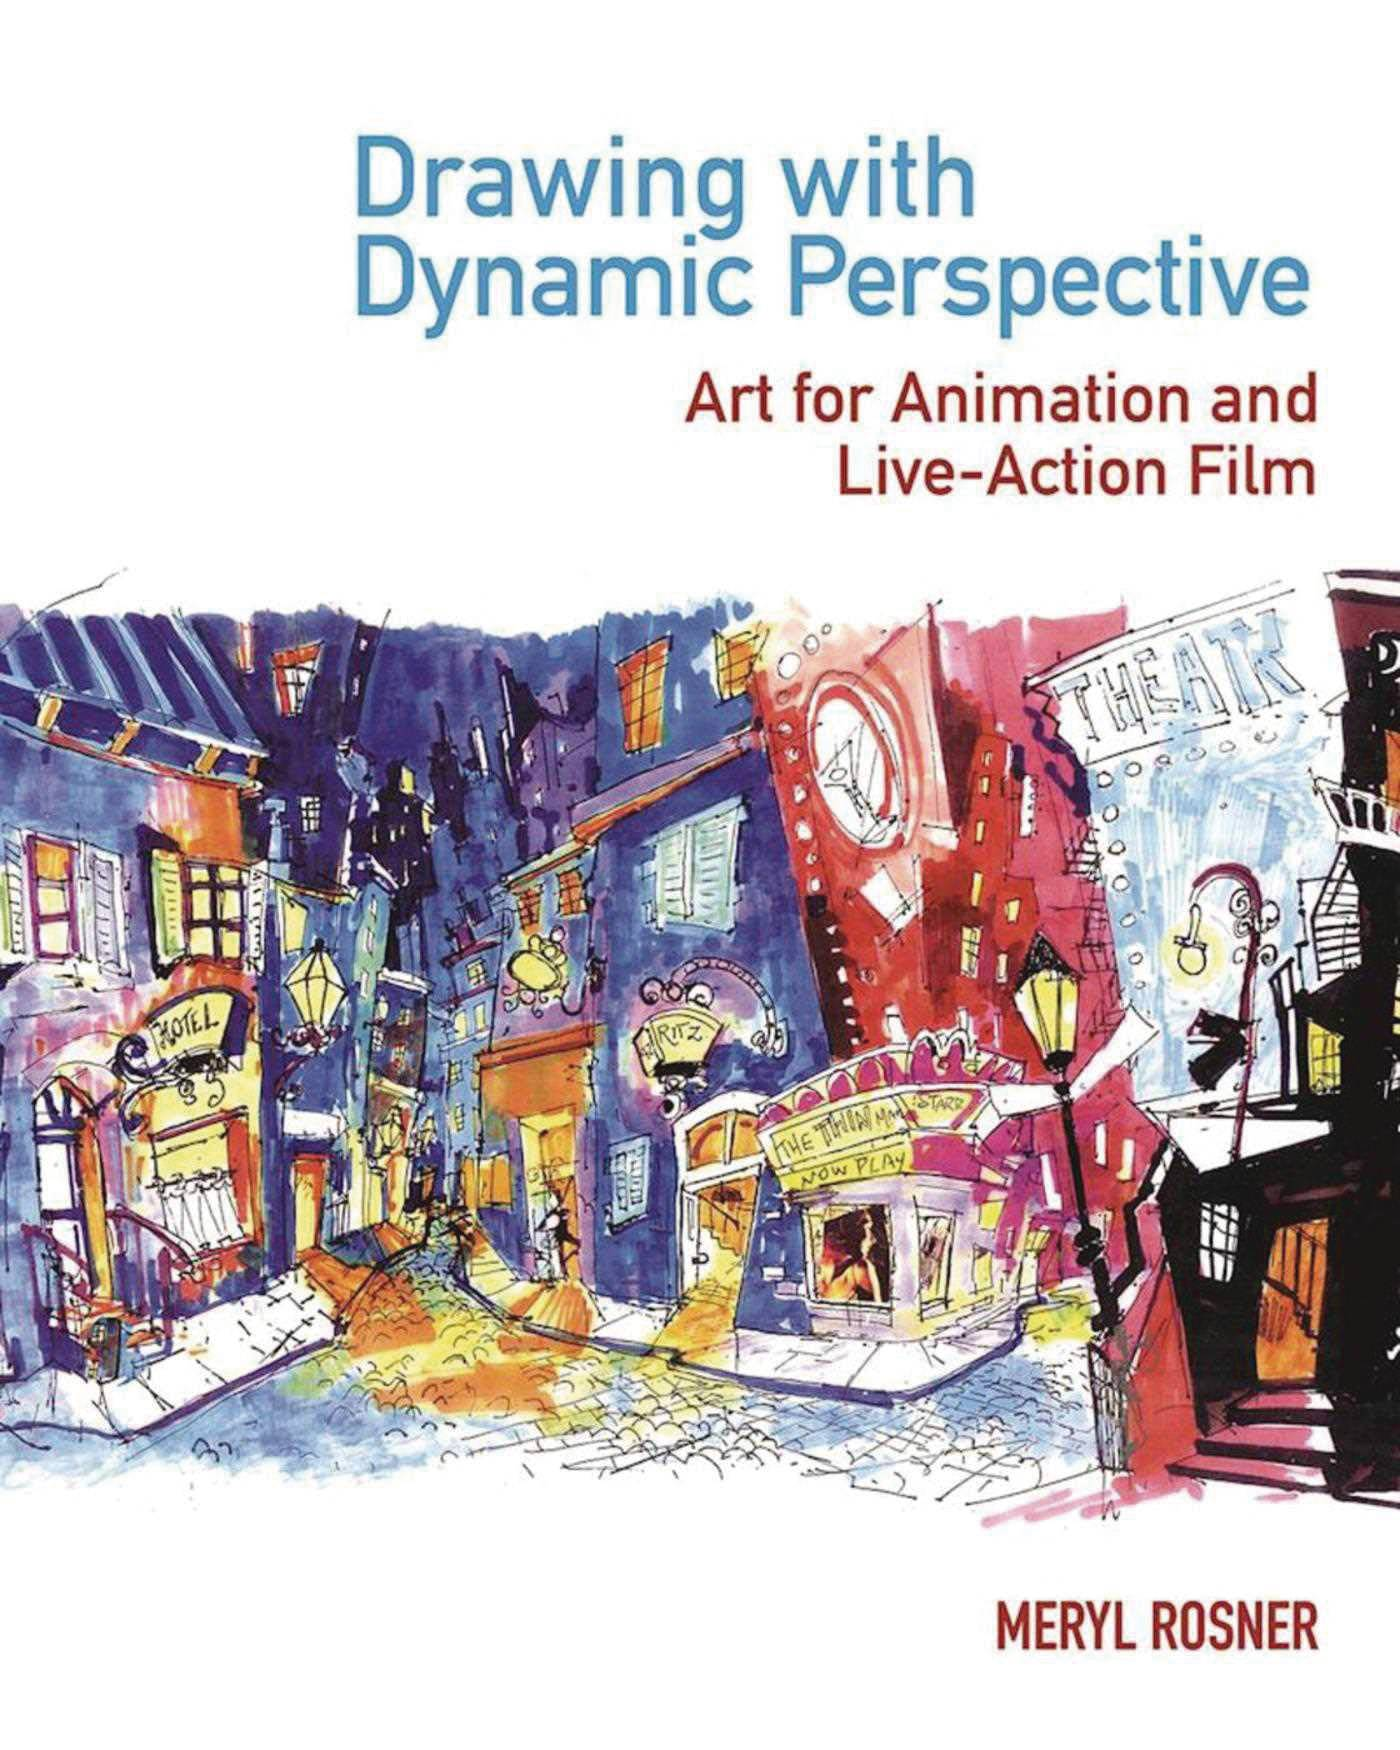 DRAWING W DYNAMIC PERSPECTIVE ART FOR ANIMATION & FILM